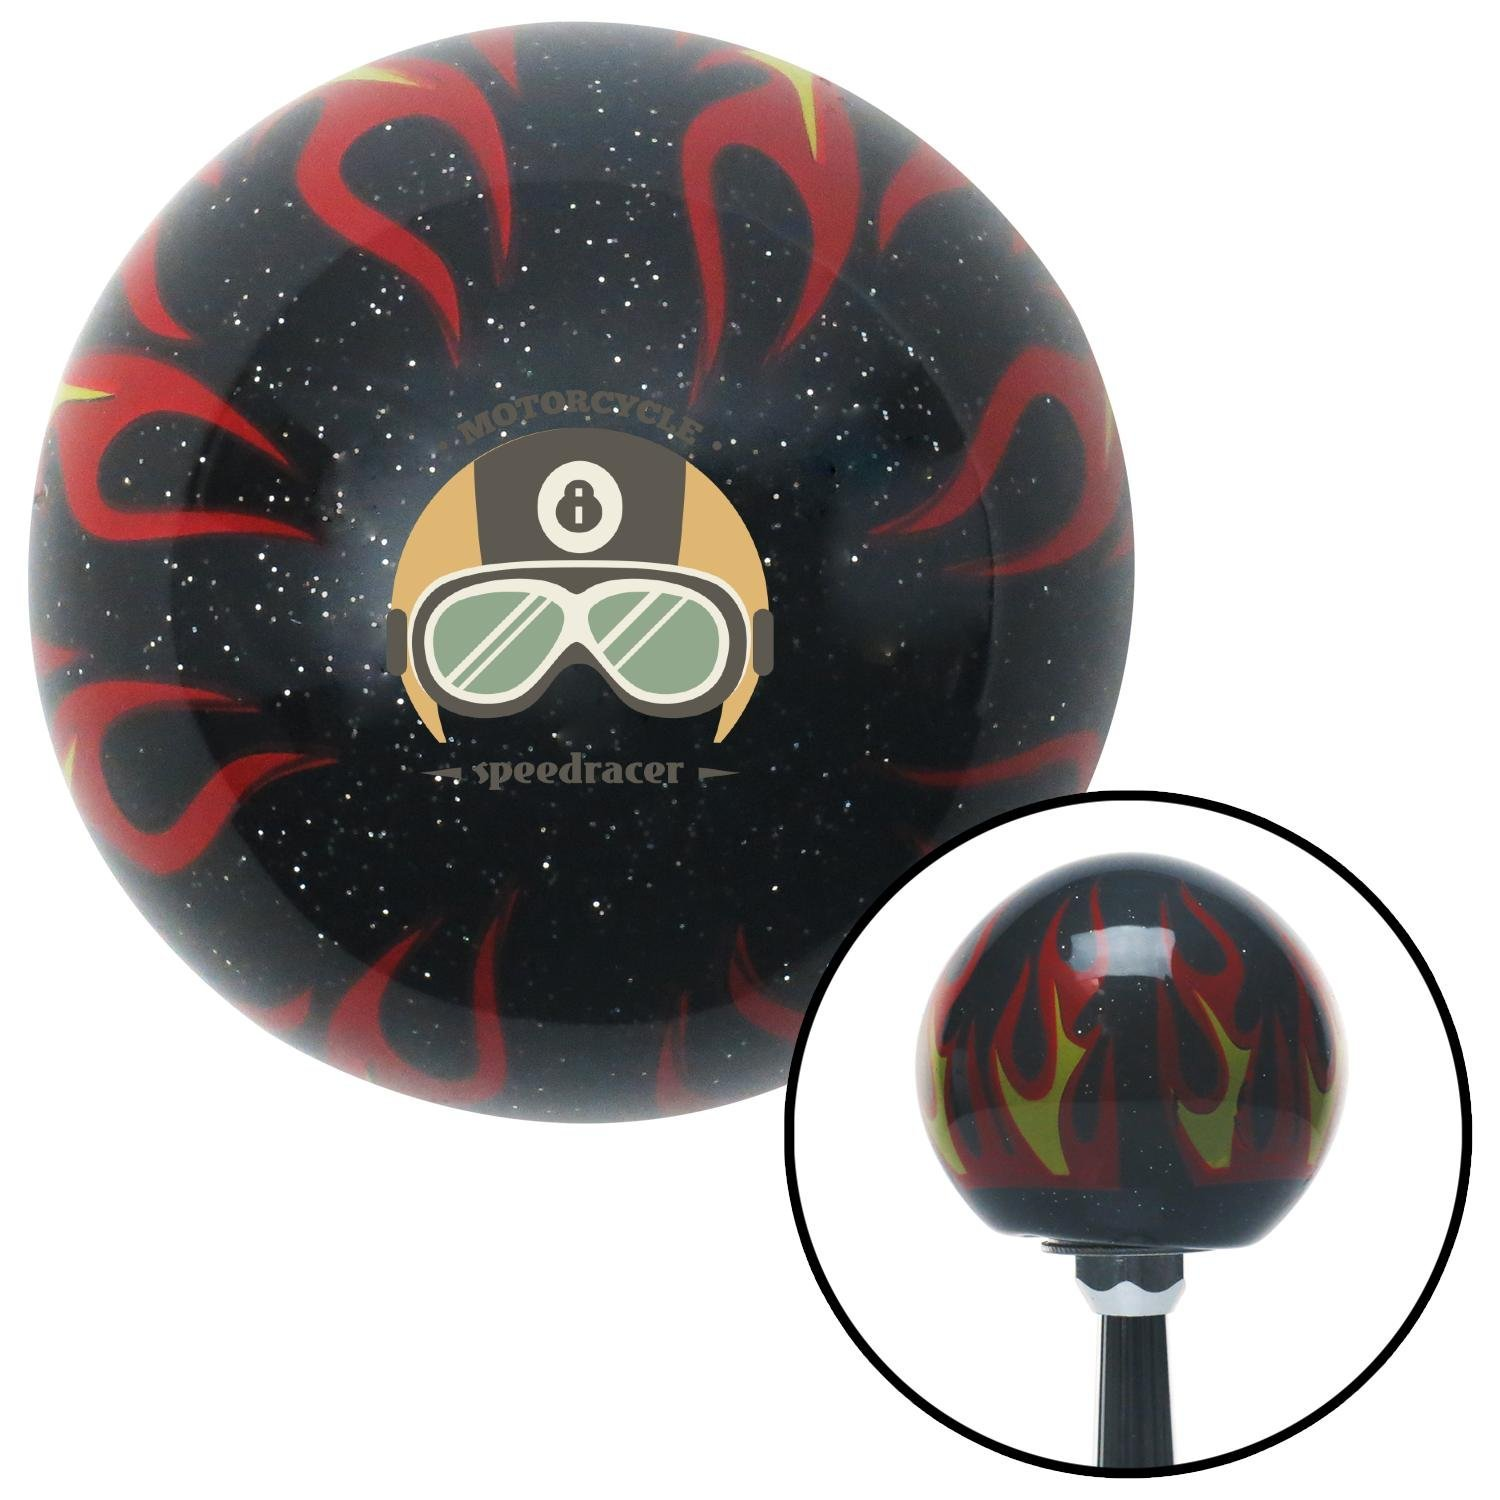 Motorcycle Speedracer Black Flame Metal Flake with M16 x 1.5 Insert American Shifter 294502 Shift Knob